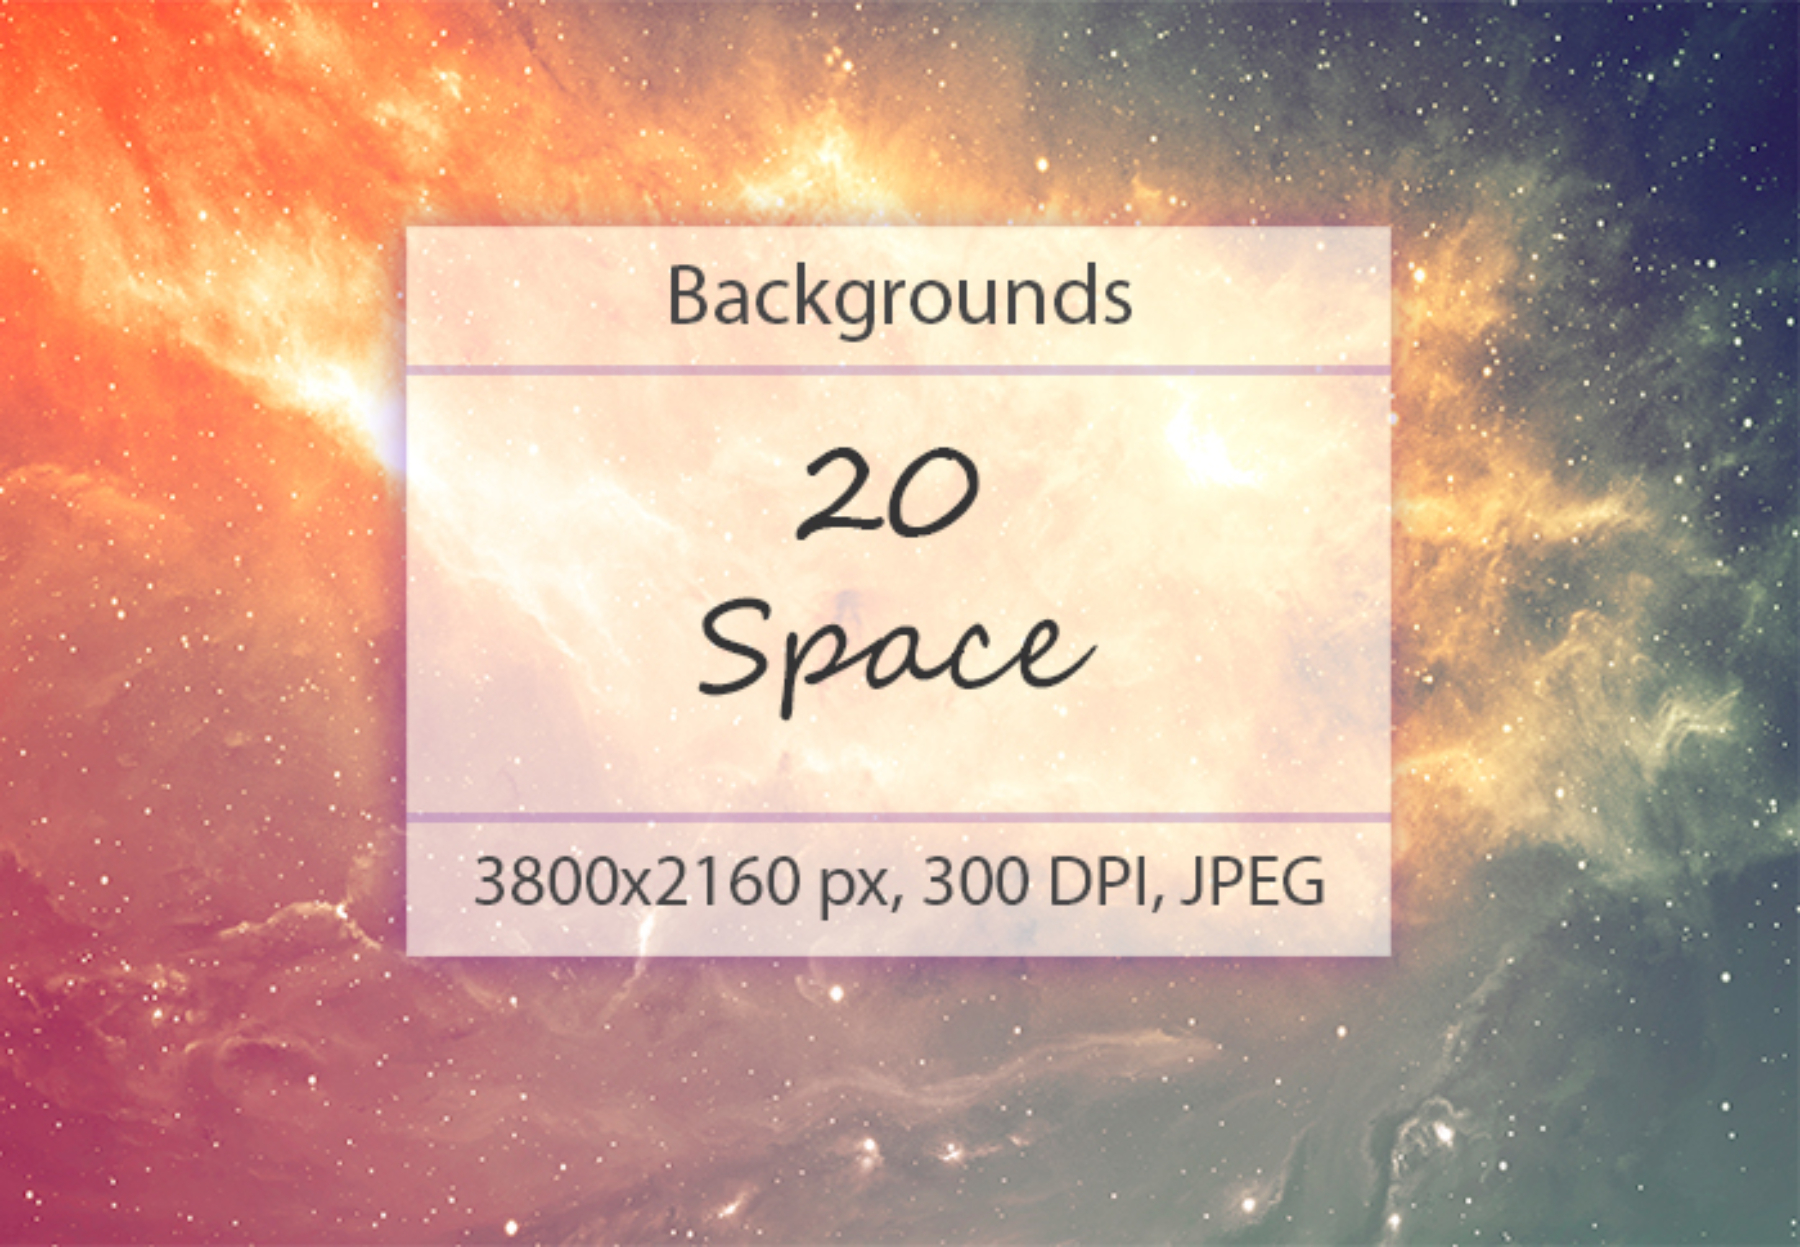 2000 High Resolution Backgrounds example image 2